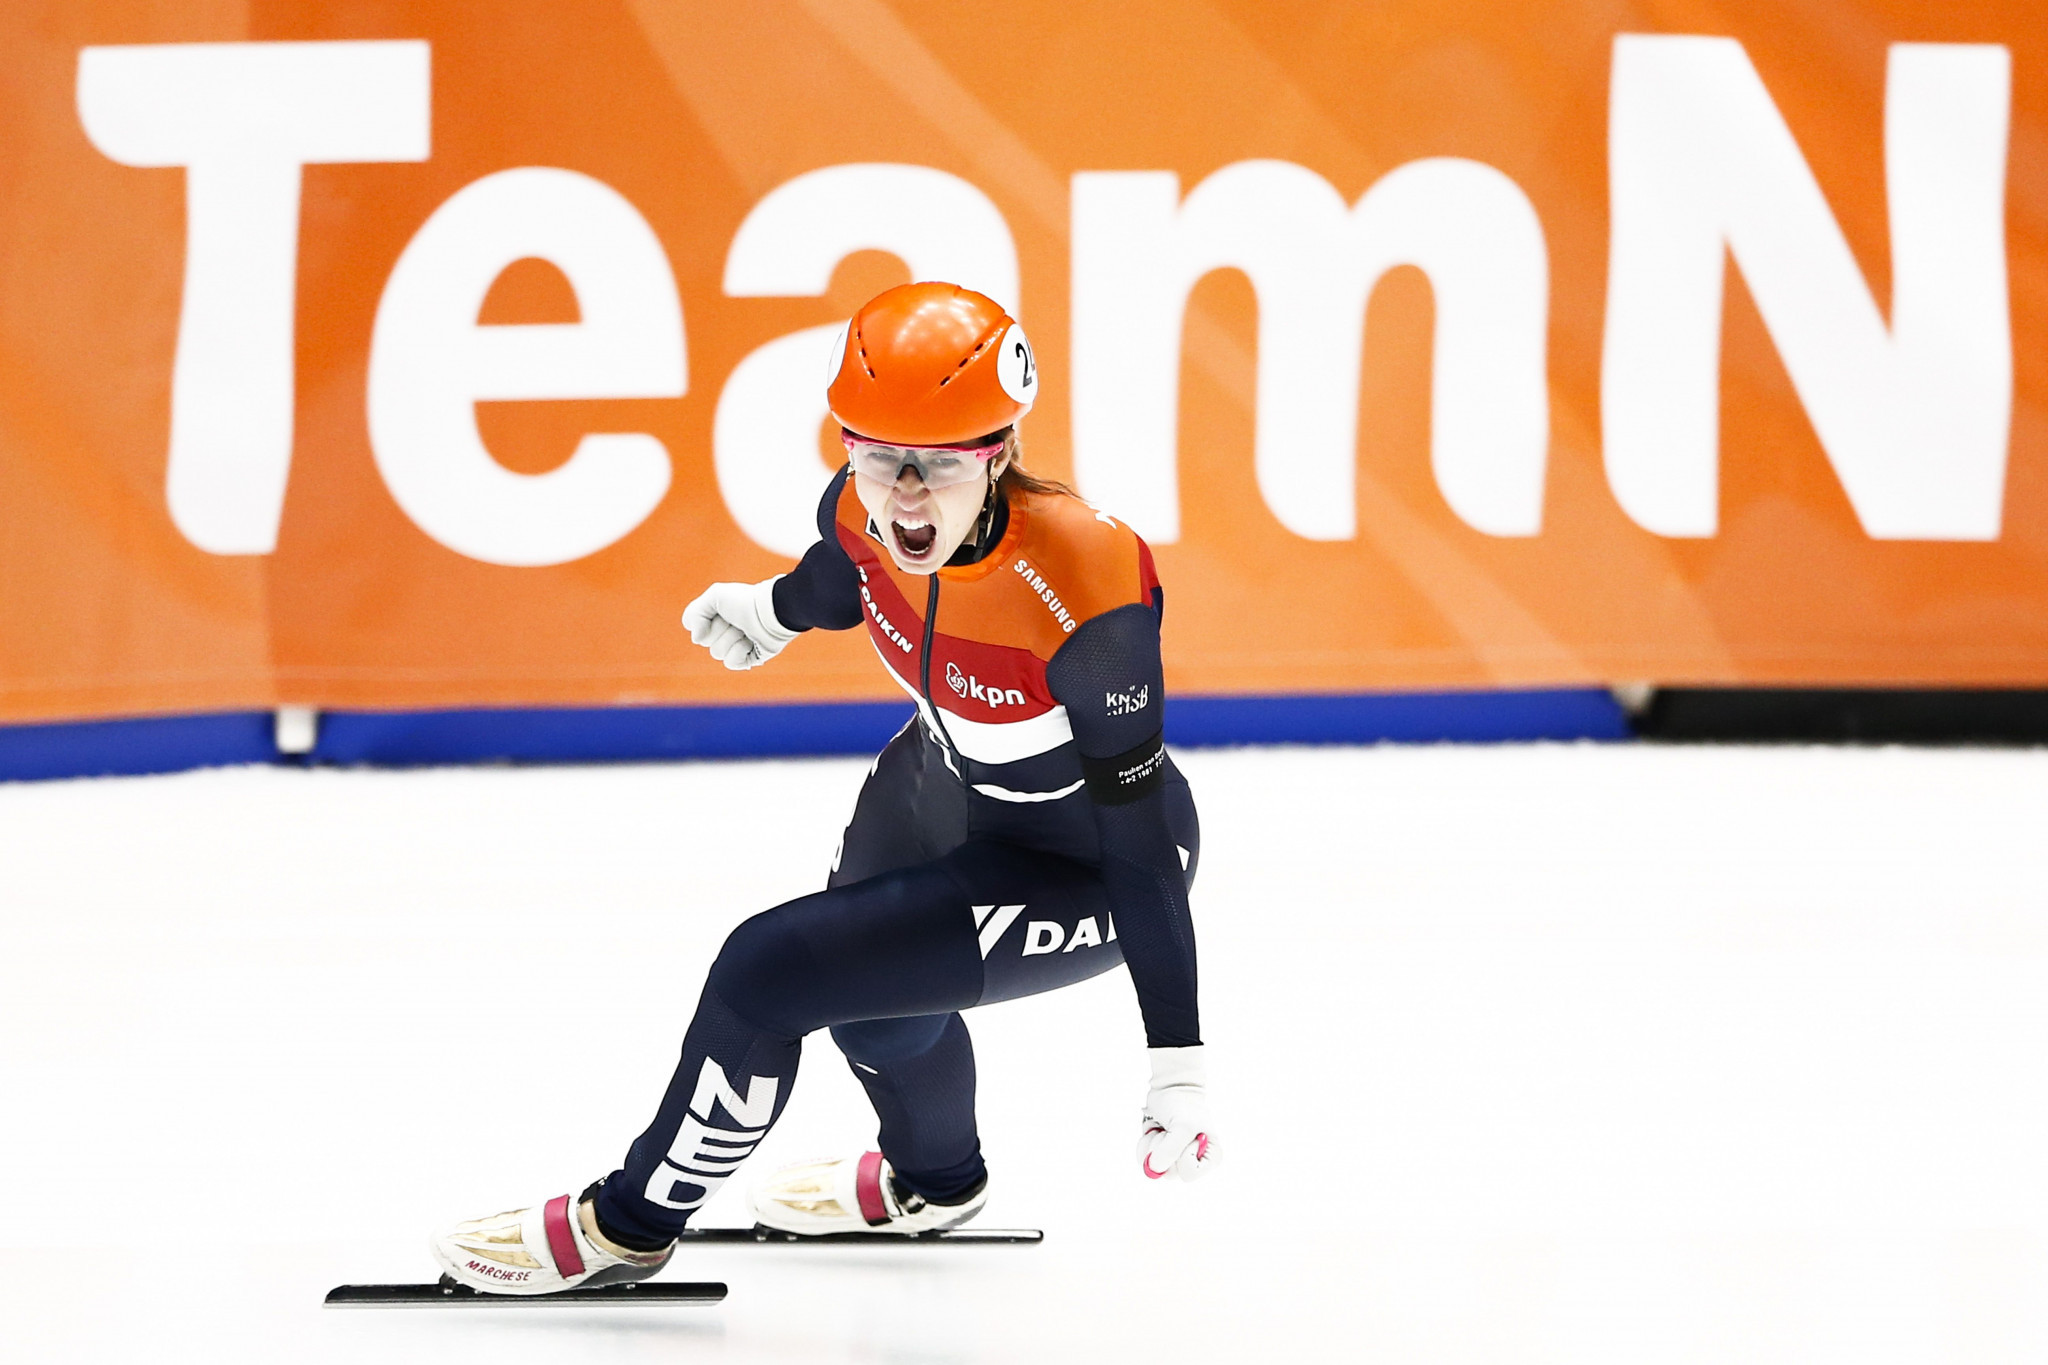 Suzanne Schulting of The Netherlands celebrates winning the women's 1,500m final at the ISU Short Track Speed Skating European Championships in front of her home crowd in Dordrecht ©ISU